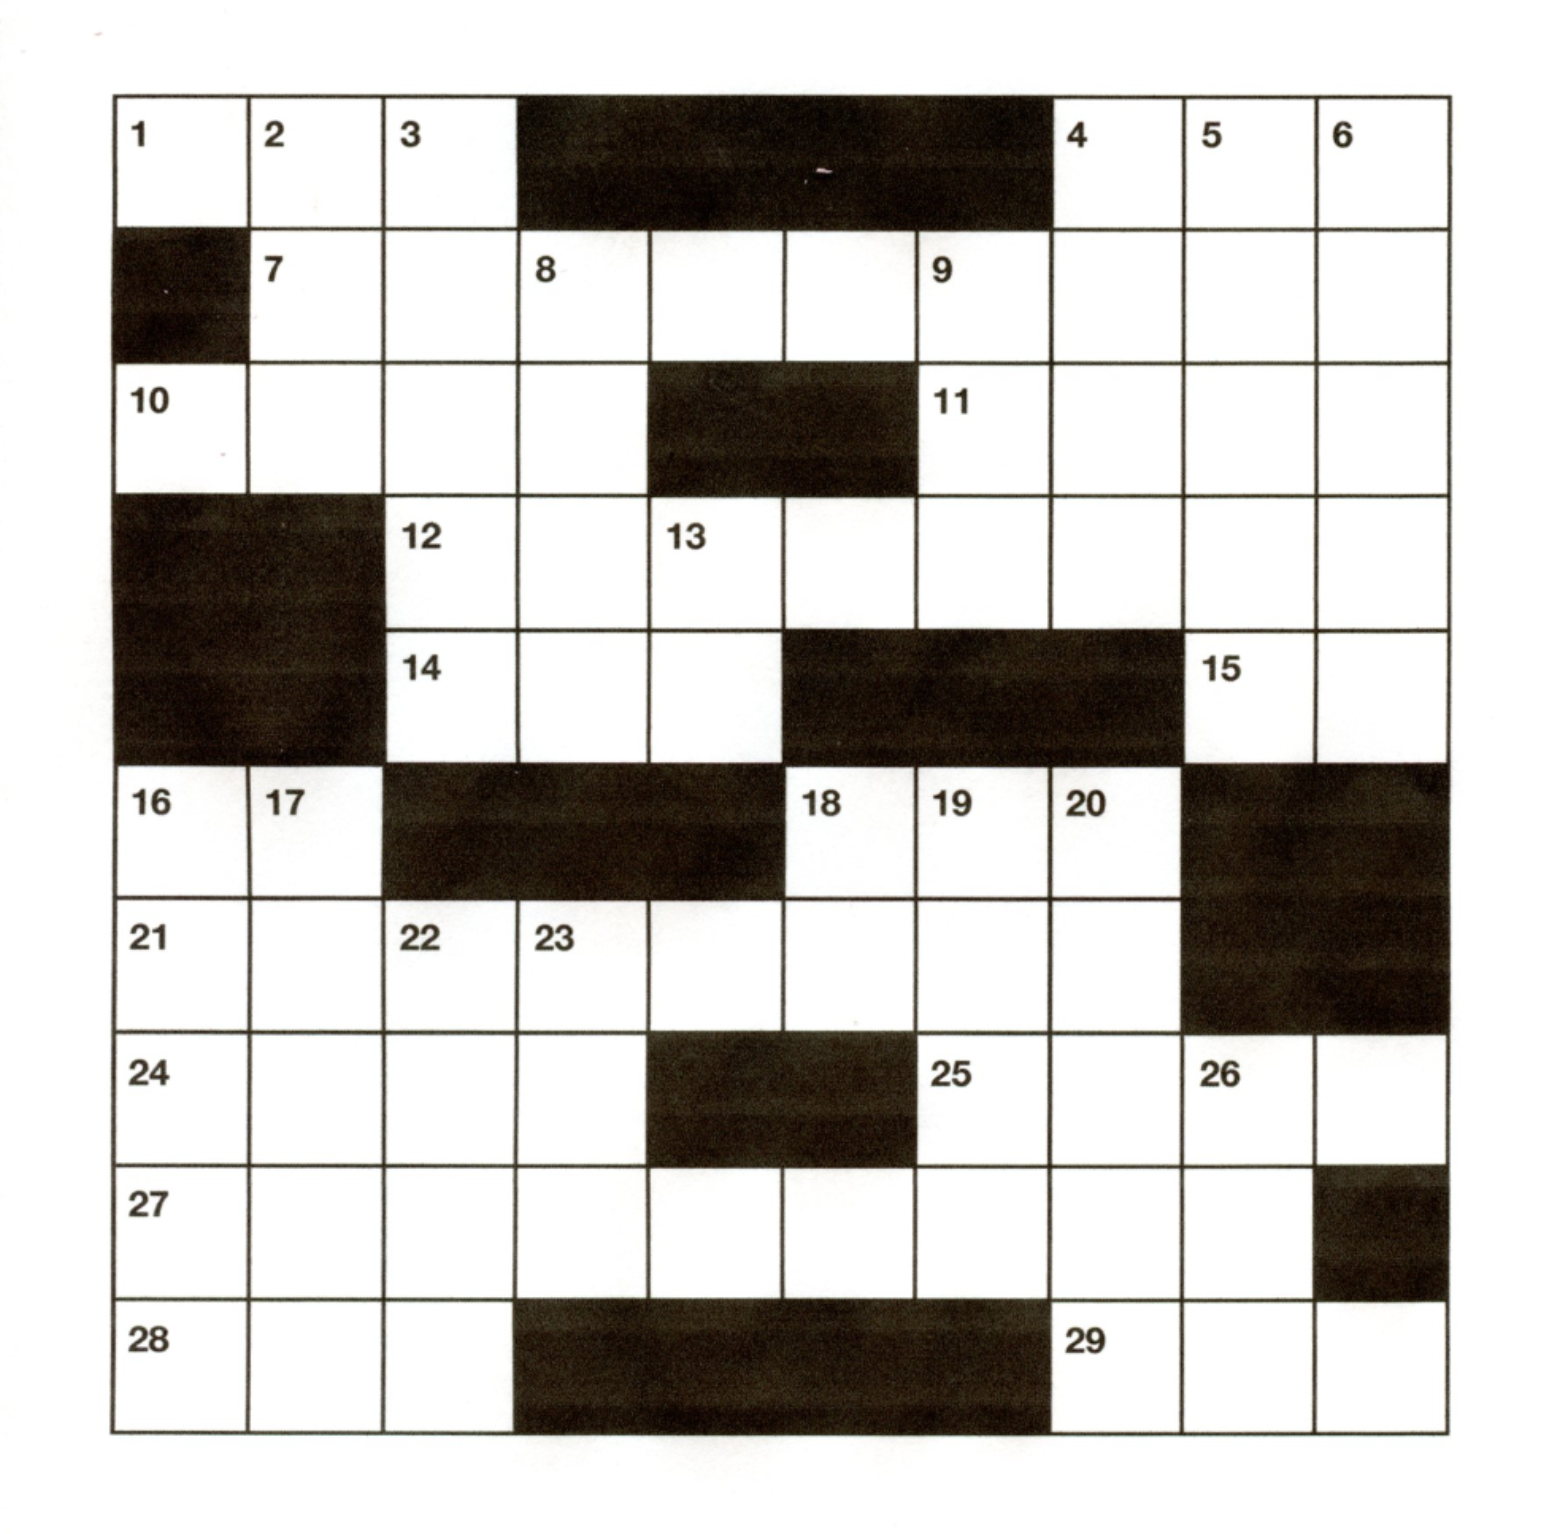 APRIL CATSKILL CROSSWORD - April 2020